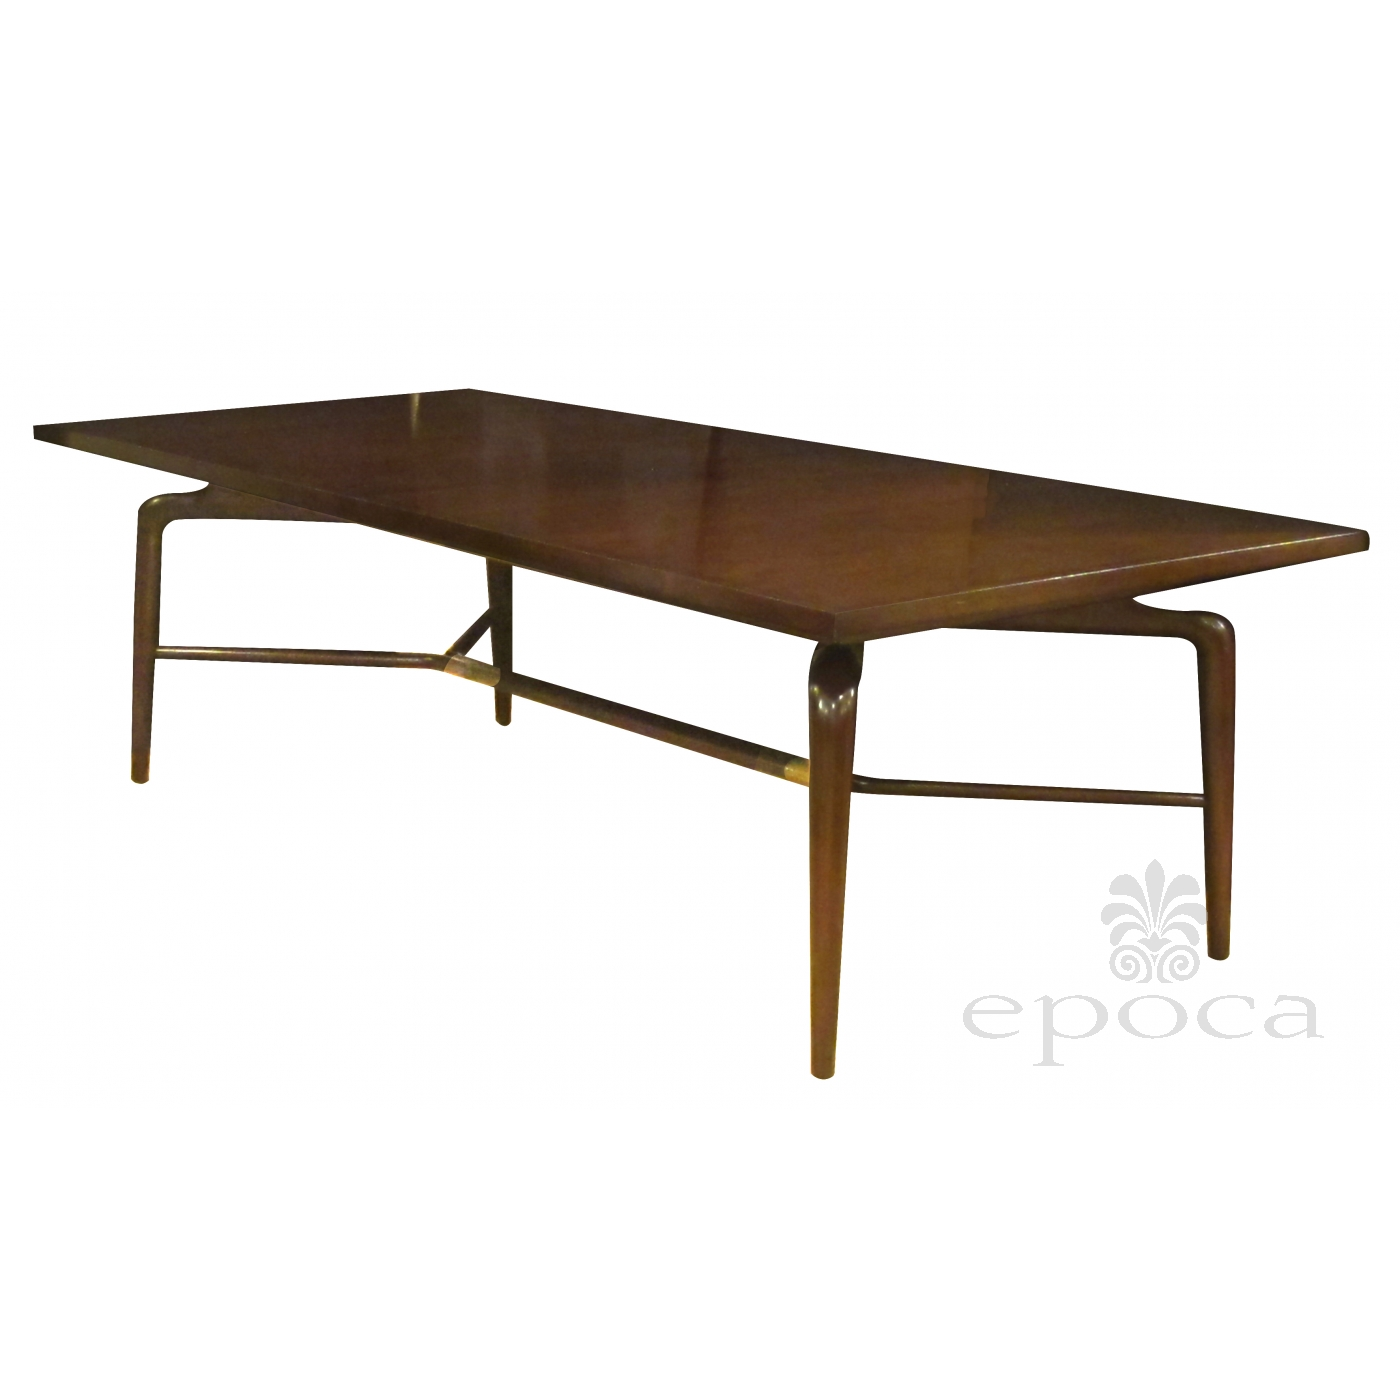 Sleek And Long Monteverdi Young Mid Century Rectangular Walnut Dining Table  With 2 Leaves